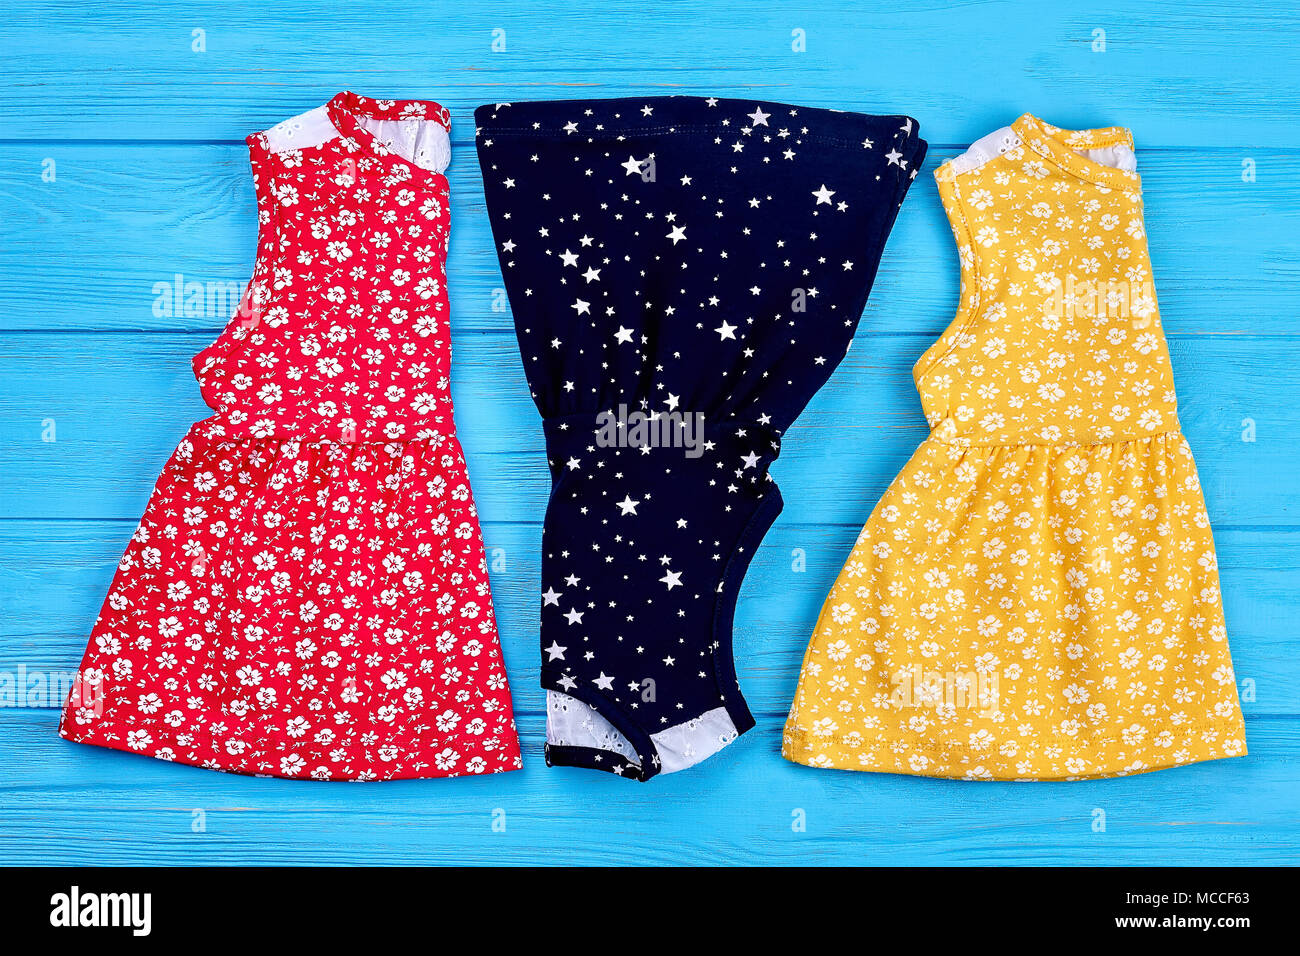 4caa574d2 New folded baby summer dresses. Collection of natural toddler girls  sundresses on shop shelf. Cute vintage baby-girl dresses on sale.